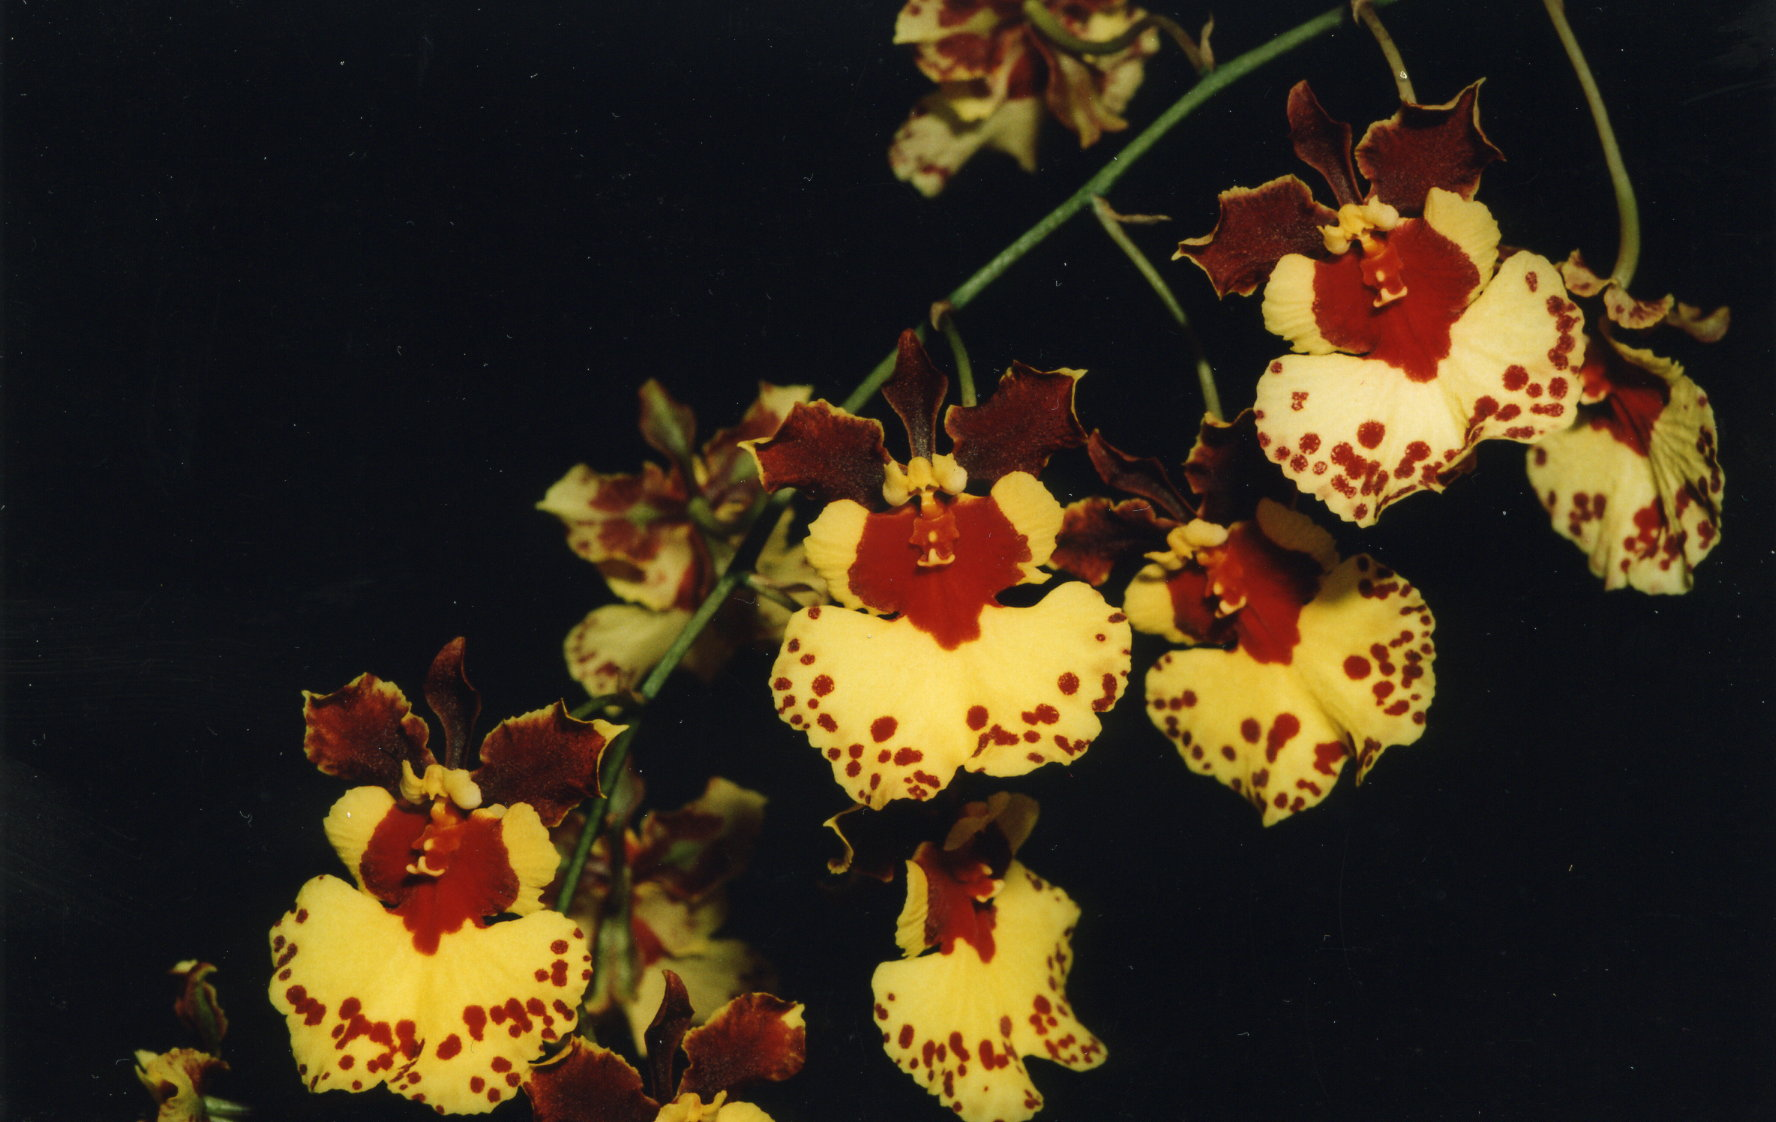 Oncidium Orchid World 'Roboson' - grown & photographed by Olga C.